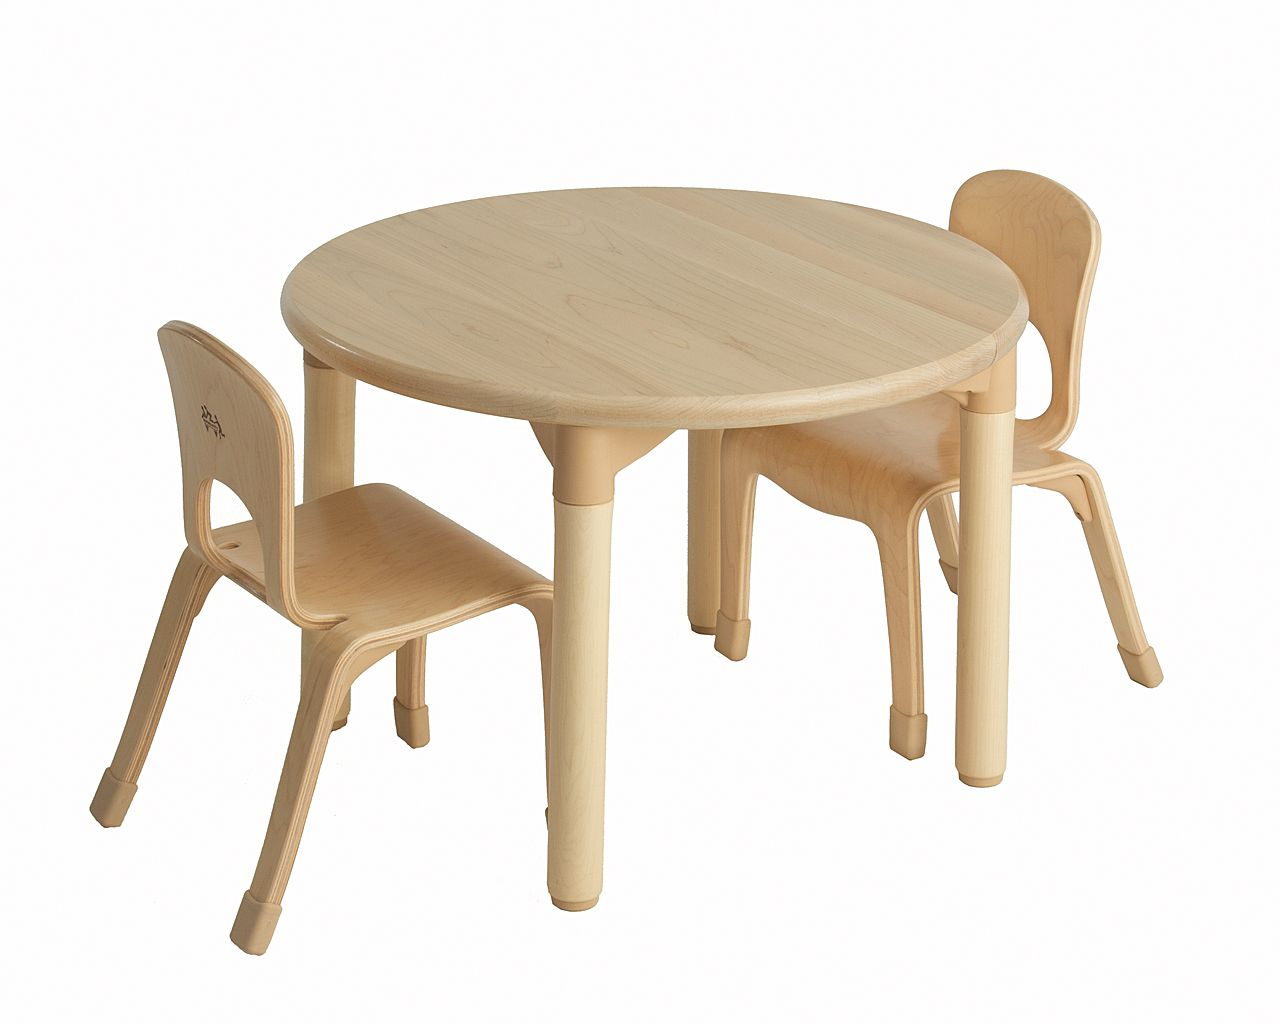 C233 Round Table 18 Inch And Two Chairs 10 Inch Chair Table Table And Chair Sets